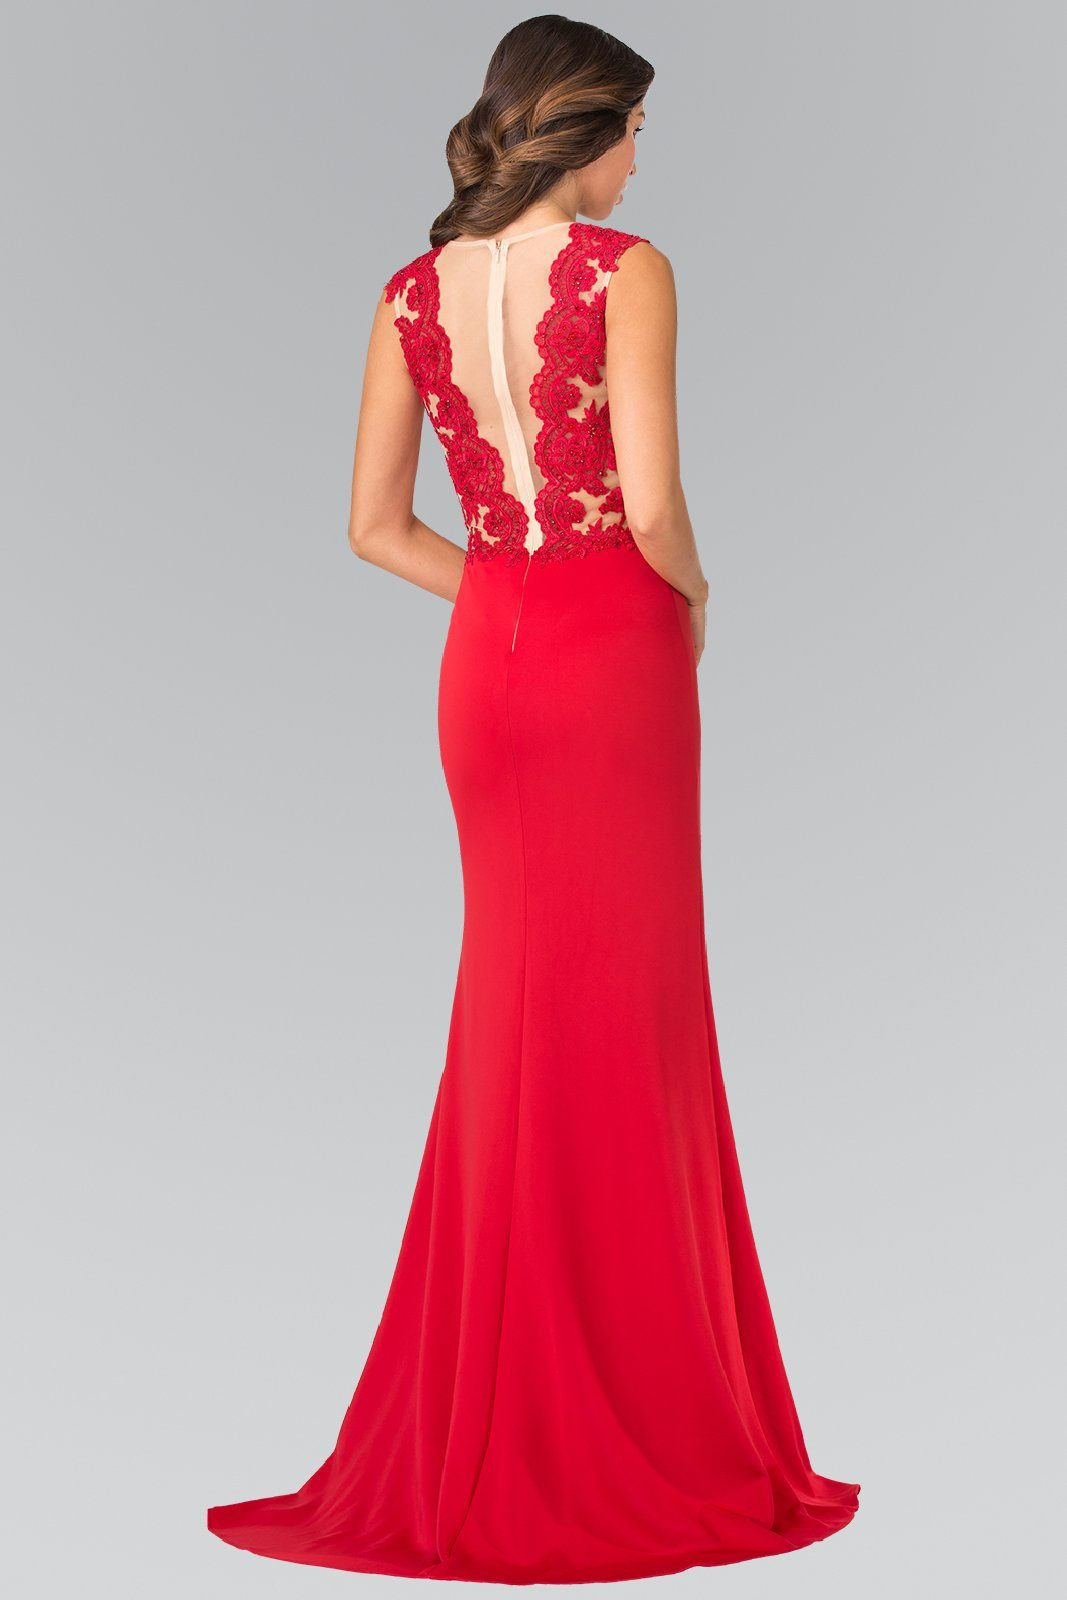 0ee03c5304 ... Sexy red formal dress gls 2286-Simply Fab Dress ...